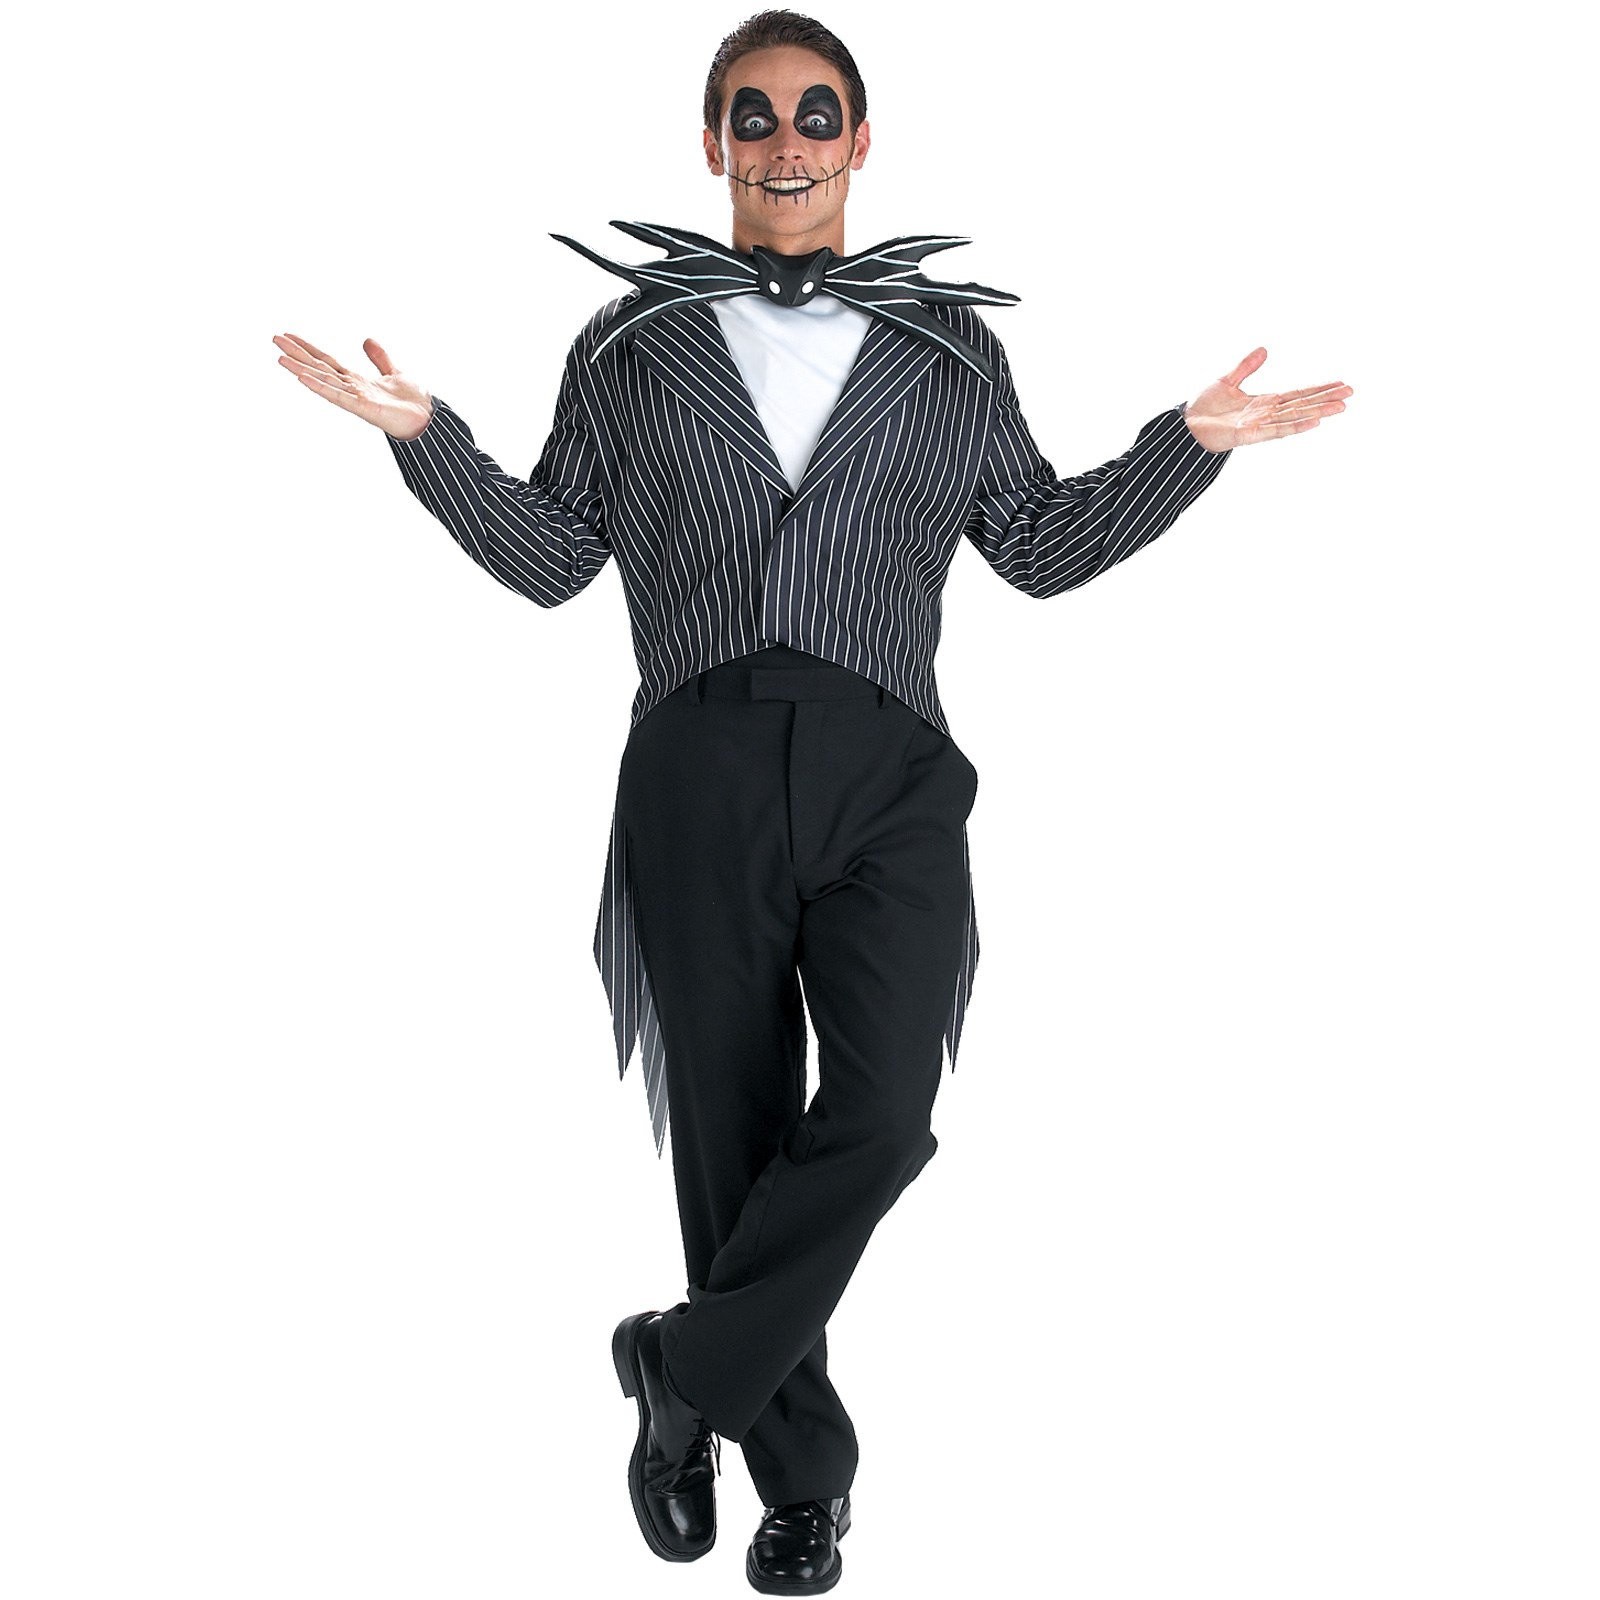 Scary Monster Costumes   BuyCostumes.com